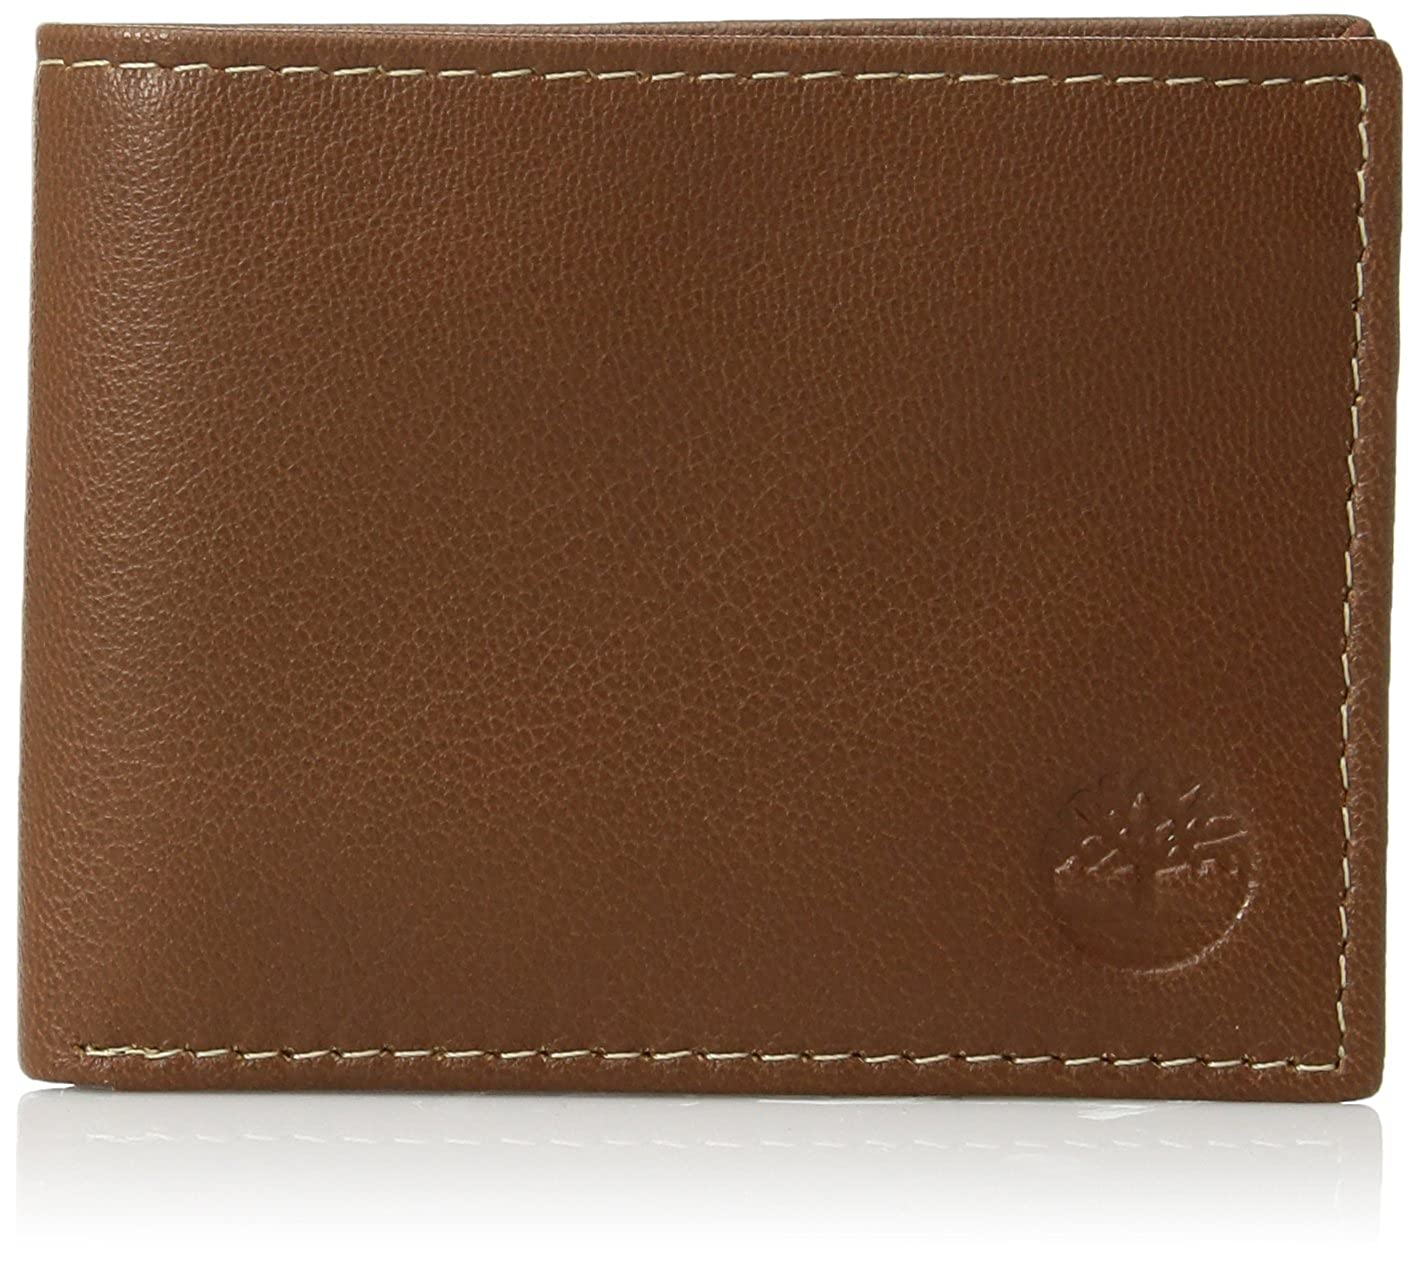 Timberland Men's Blix Slimfold Leather Wallet Timberland Accessories D10222